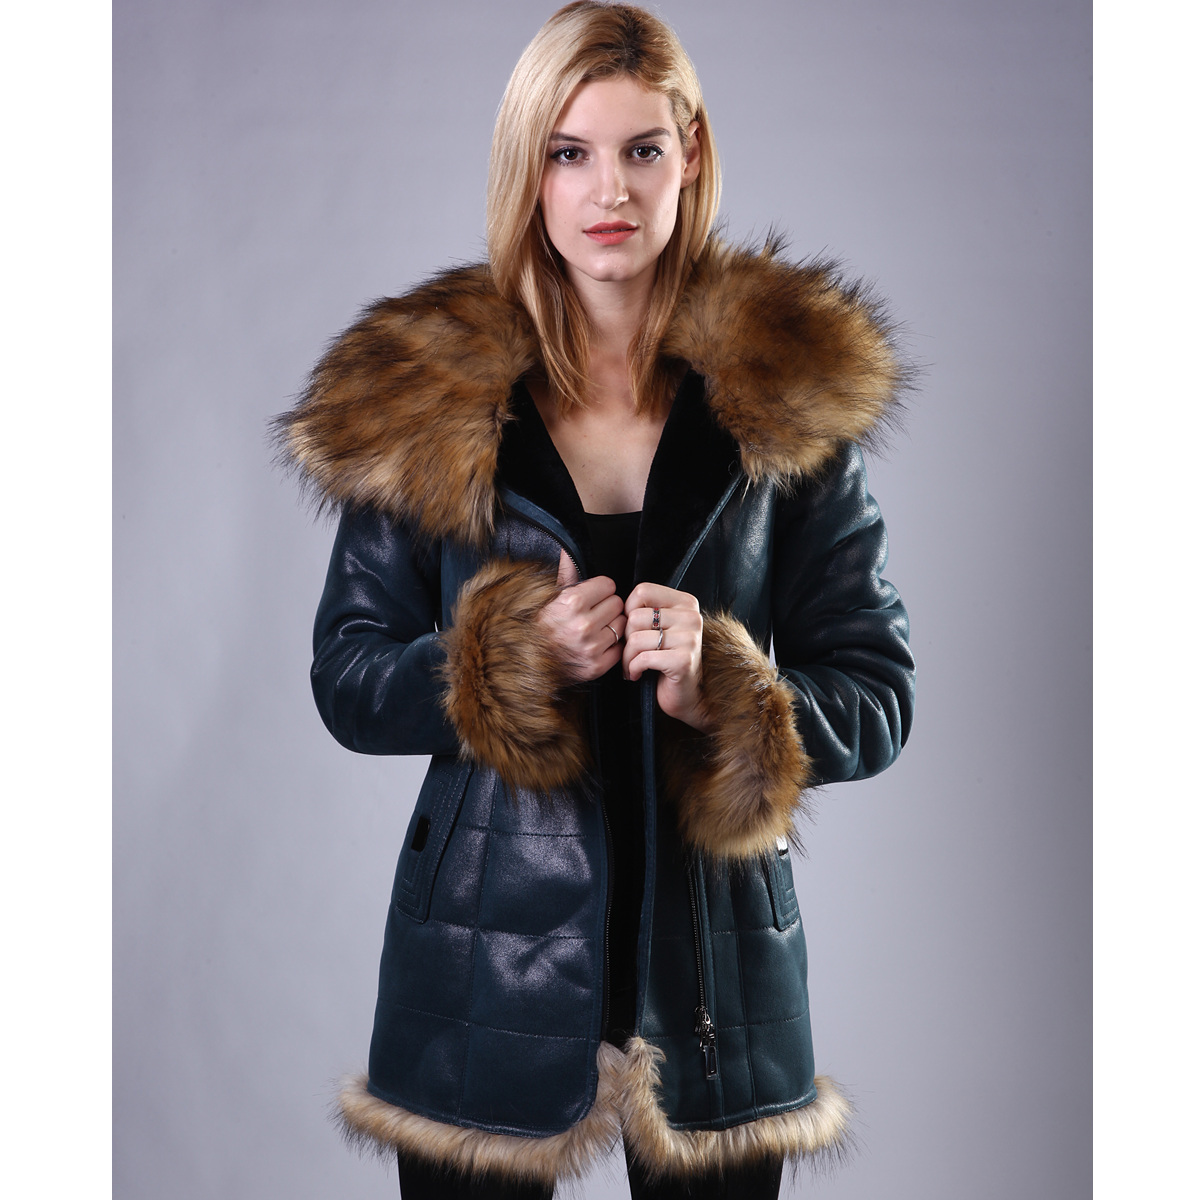 Women Coat Artificial sheepskin Raccoon Dog Fur Faux Leather Hooded collar Lady suit coat Direct supply